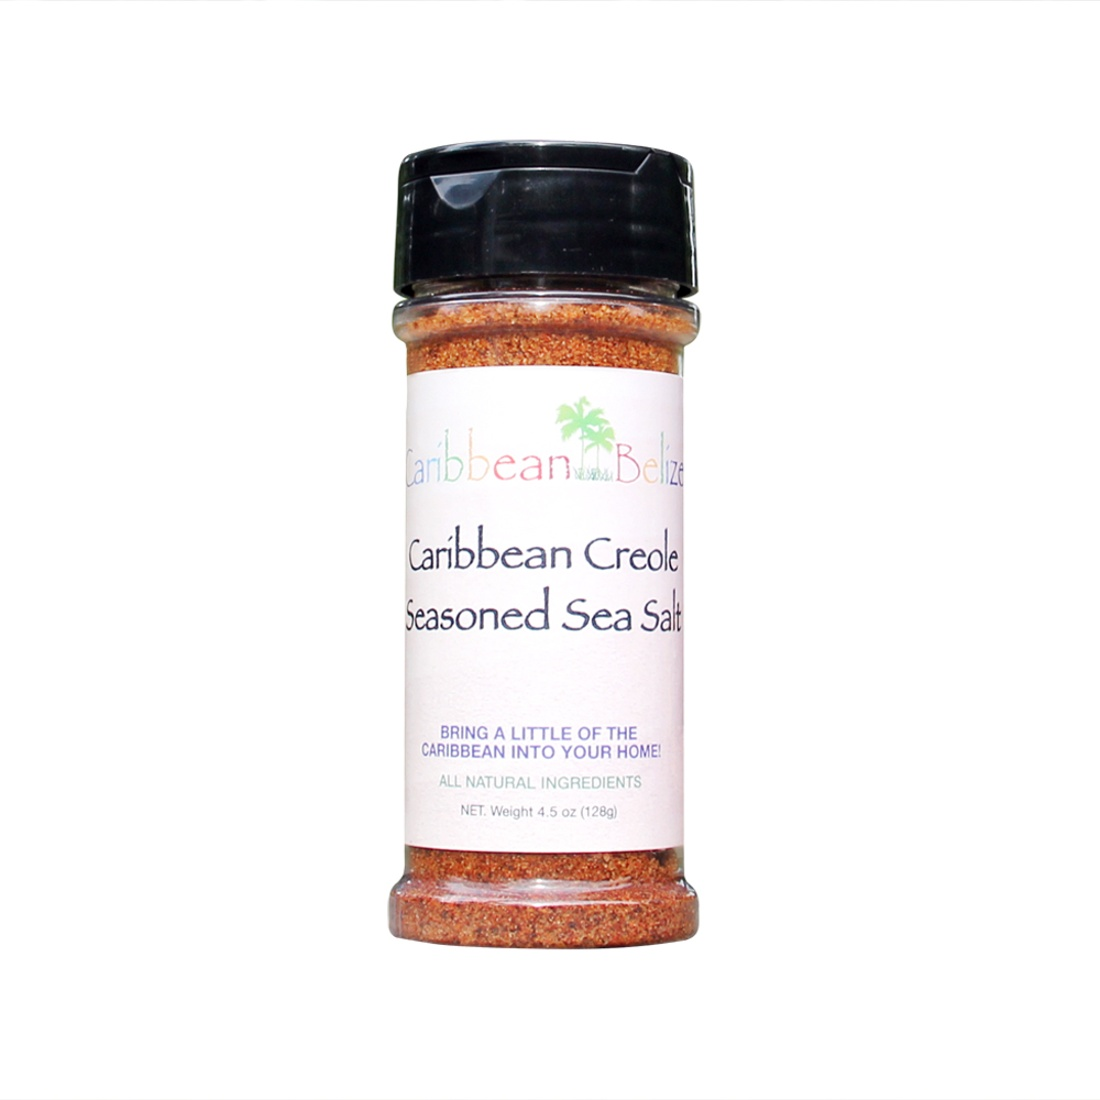 Caribbean Creole Seasoned Sea Salt